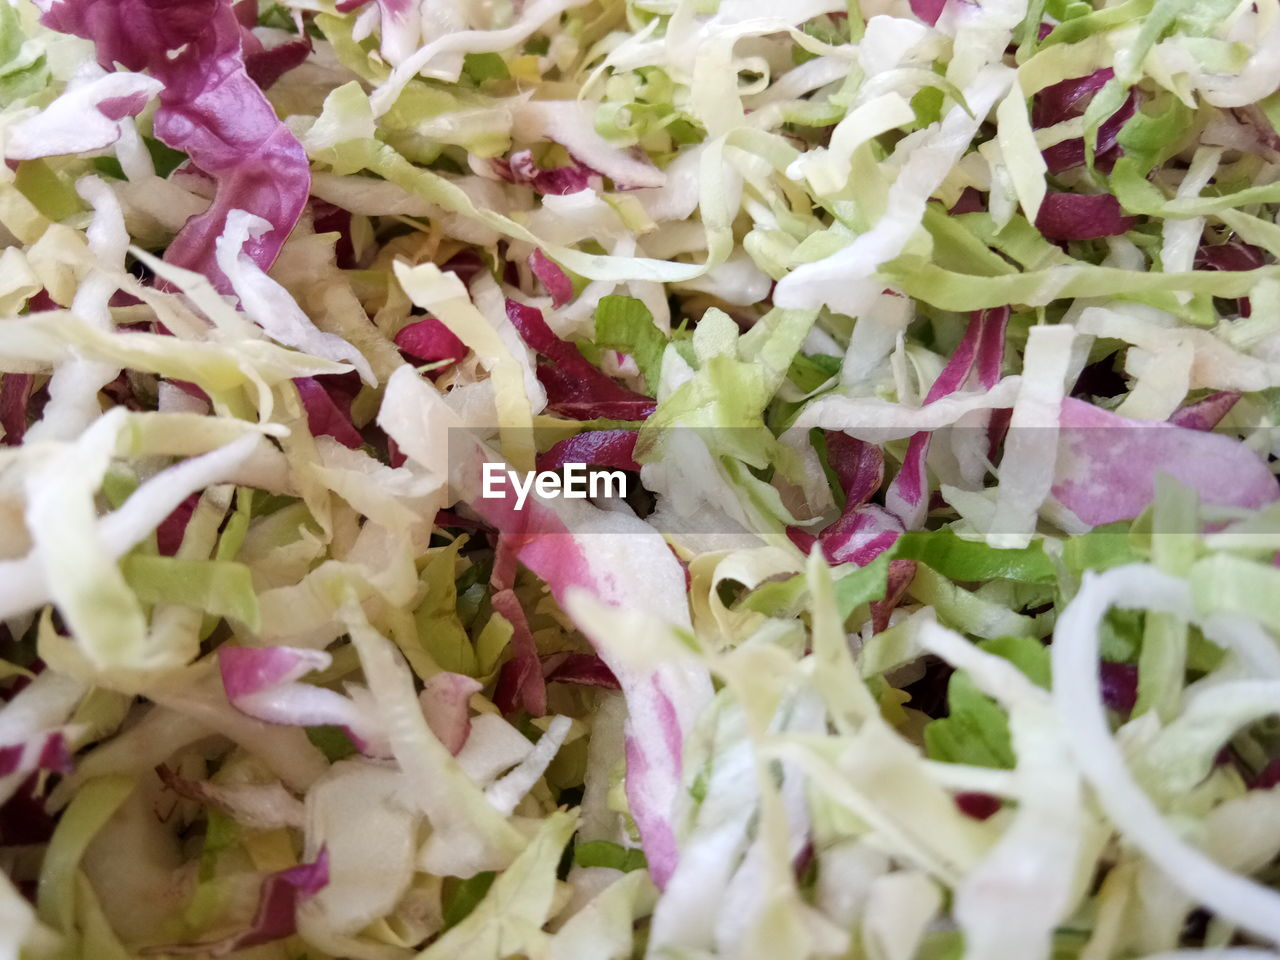 food and drink, vegetable, food, full frame, healthy eating, salad, wellbeing, freshness, indoors, close-up, still life, backgrounds, ready-to-eat, no people, vegetarian food, chopped, onion, selective focus, white color, cabbage, dinner